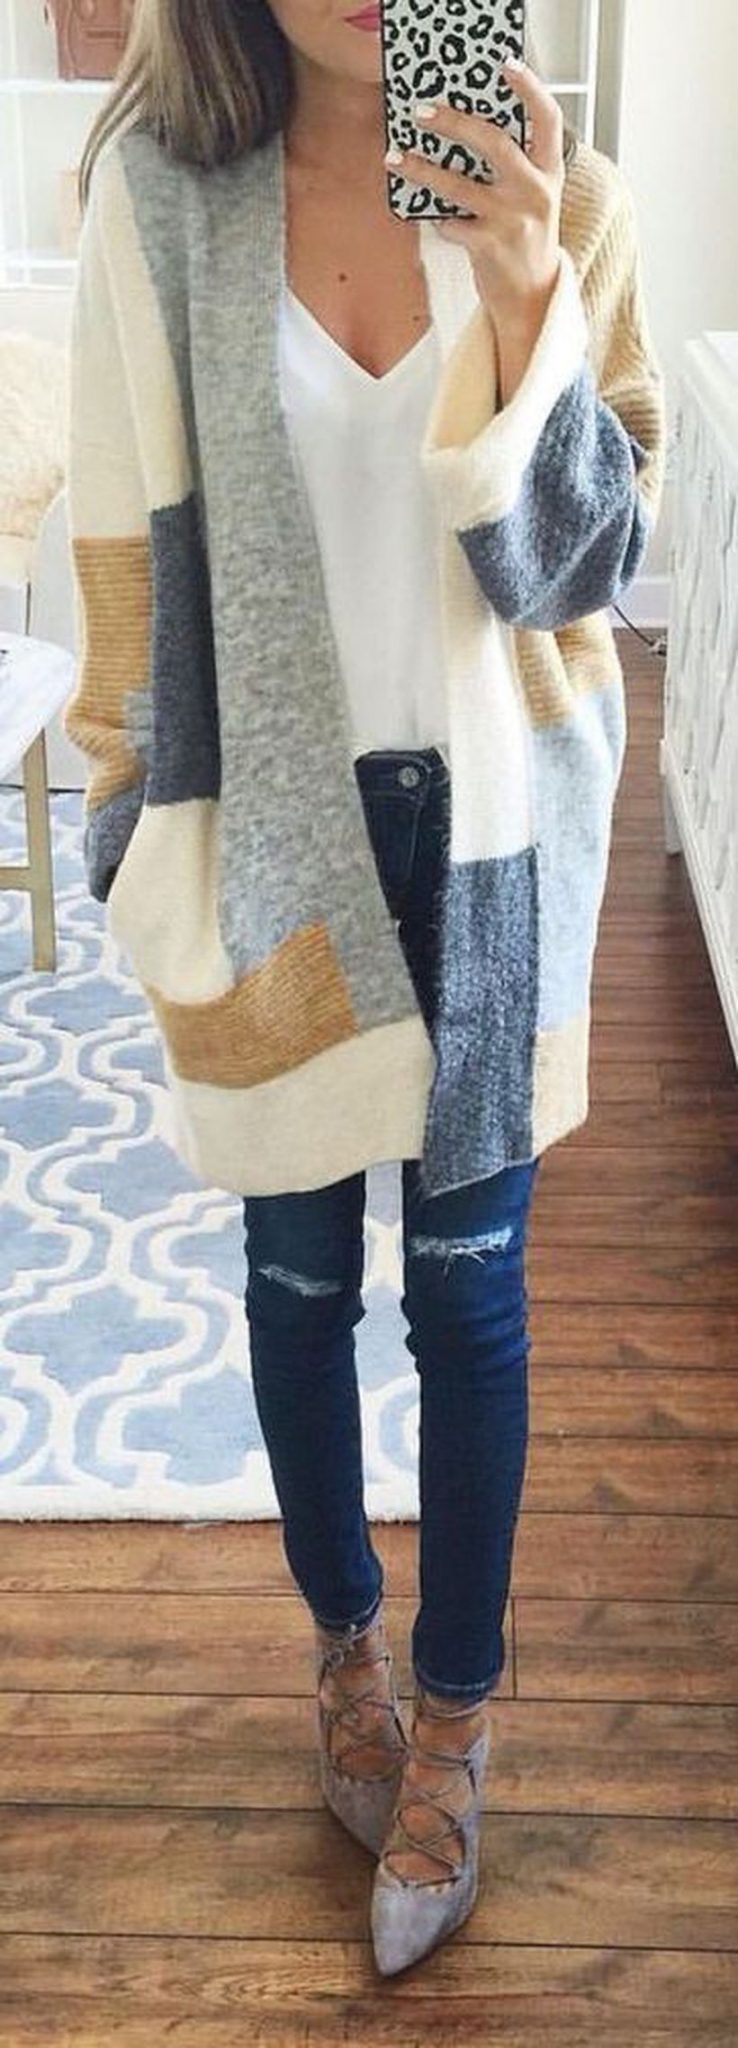 Casual fall fashions trend inspirations 2017 53